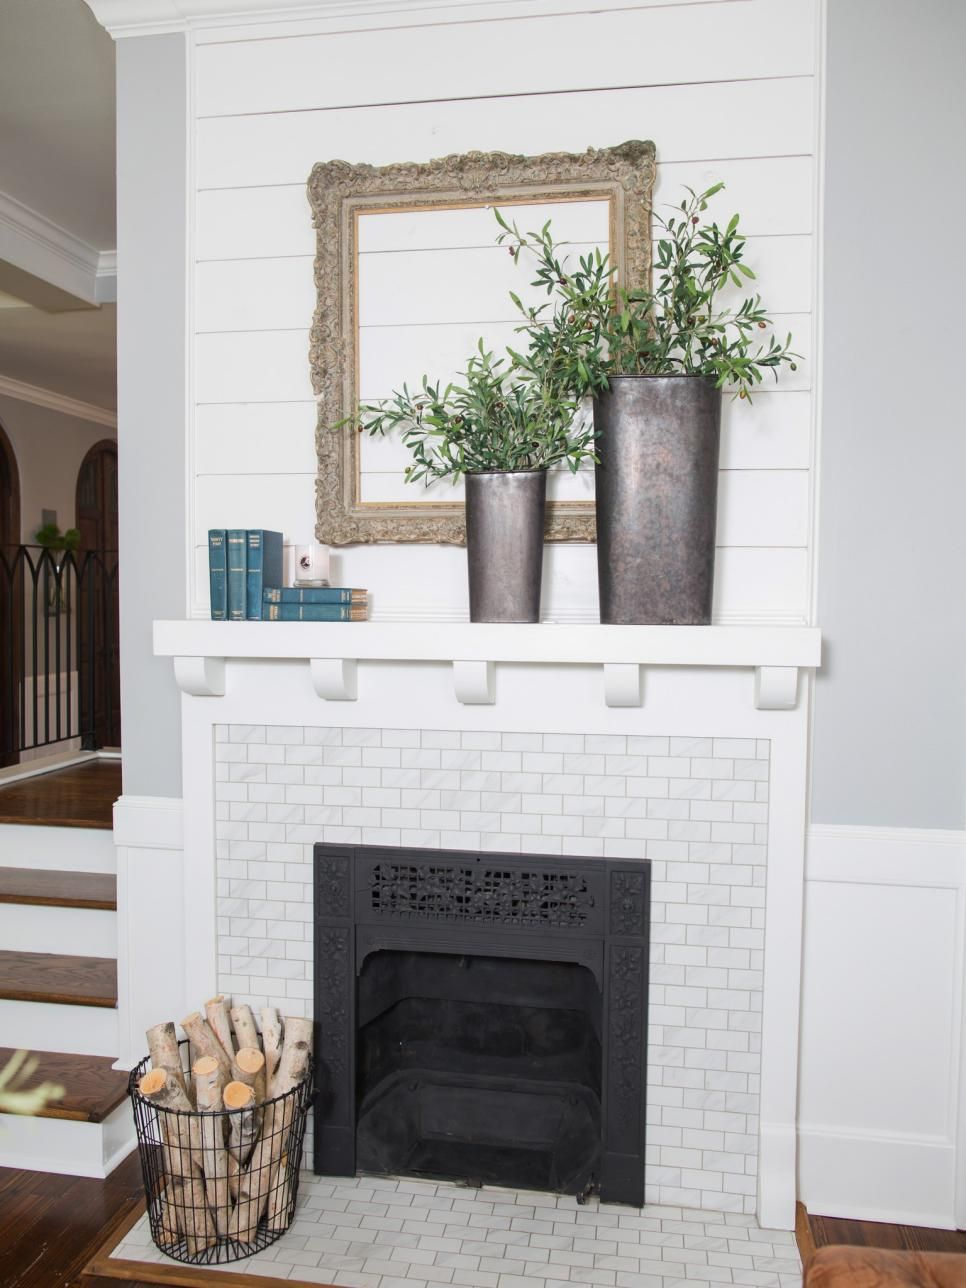 Fixer upper texassized house small town charm living room